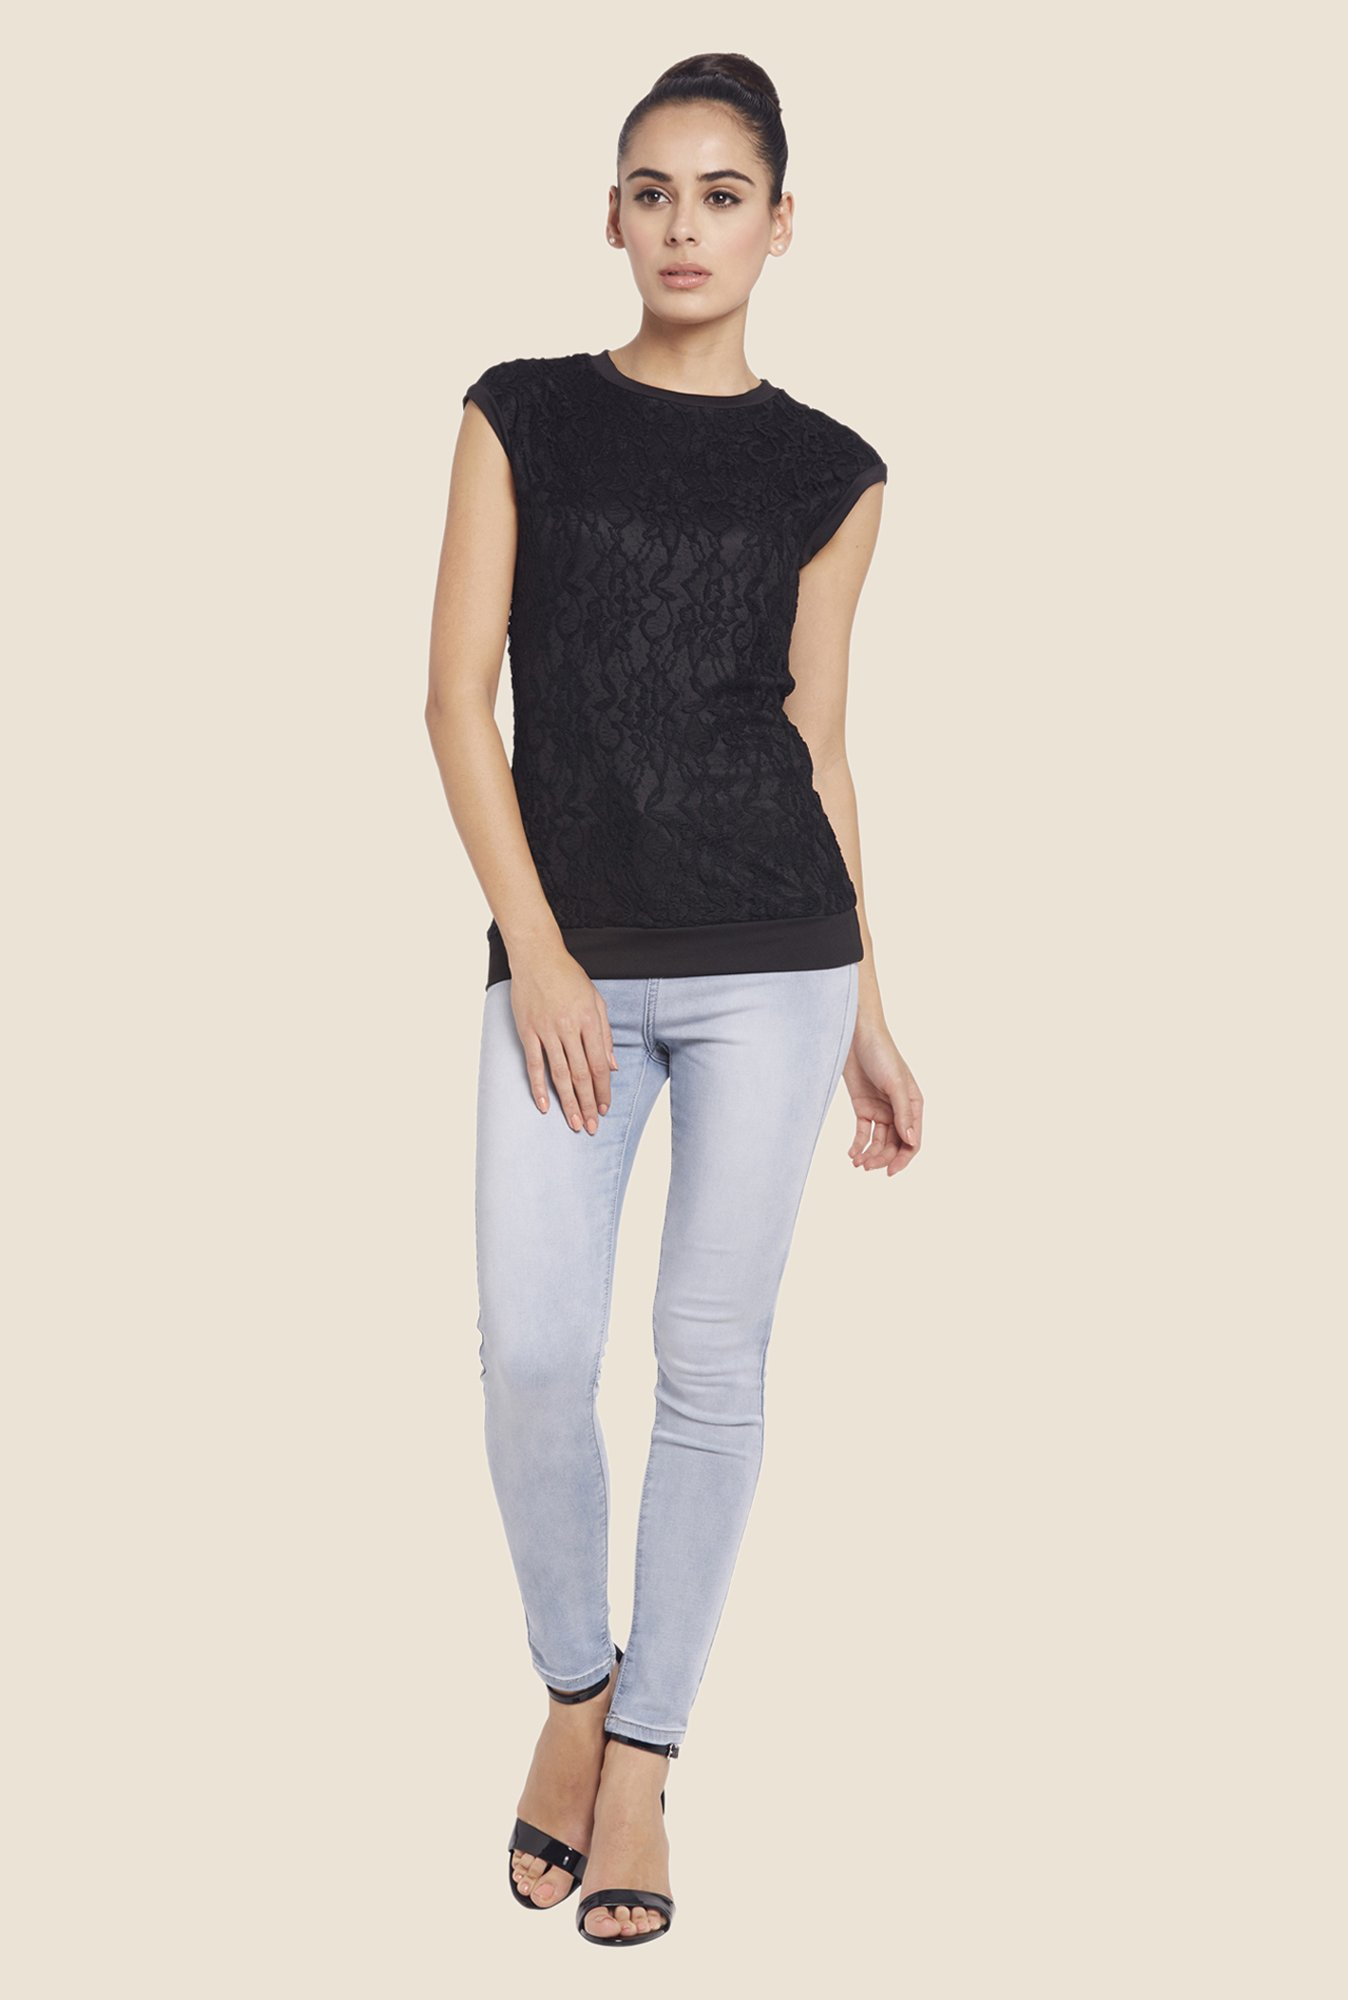 Globus Black Lace Crew Neck Top